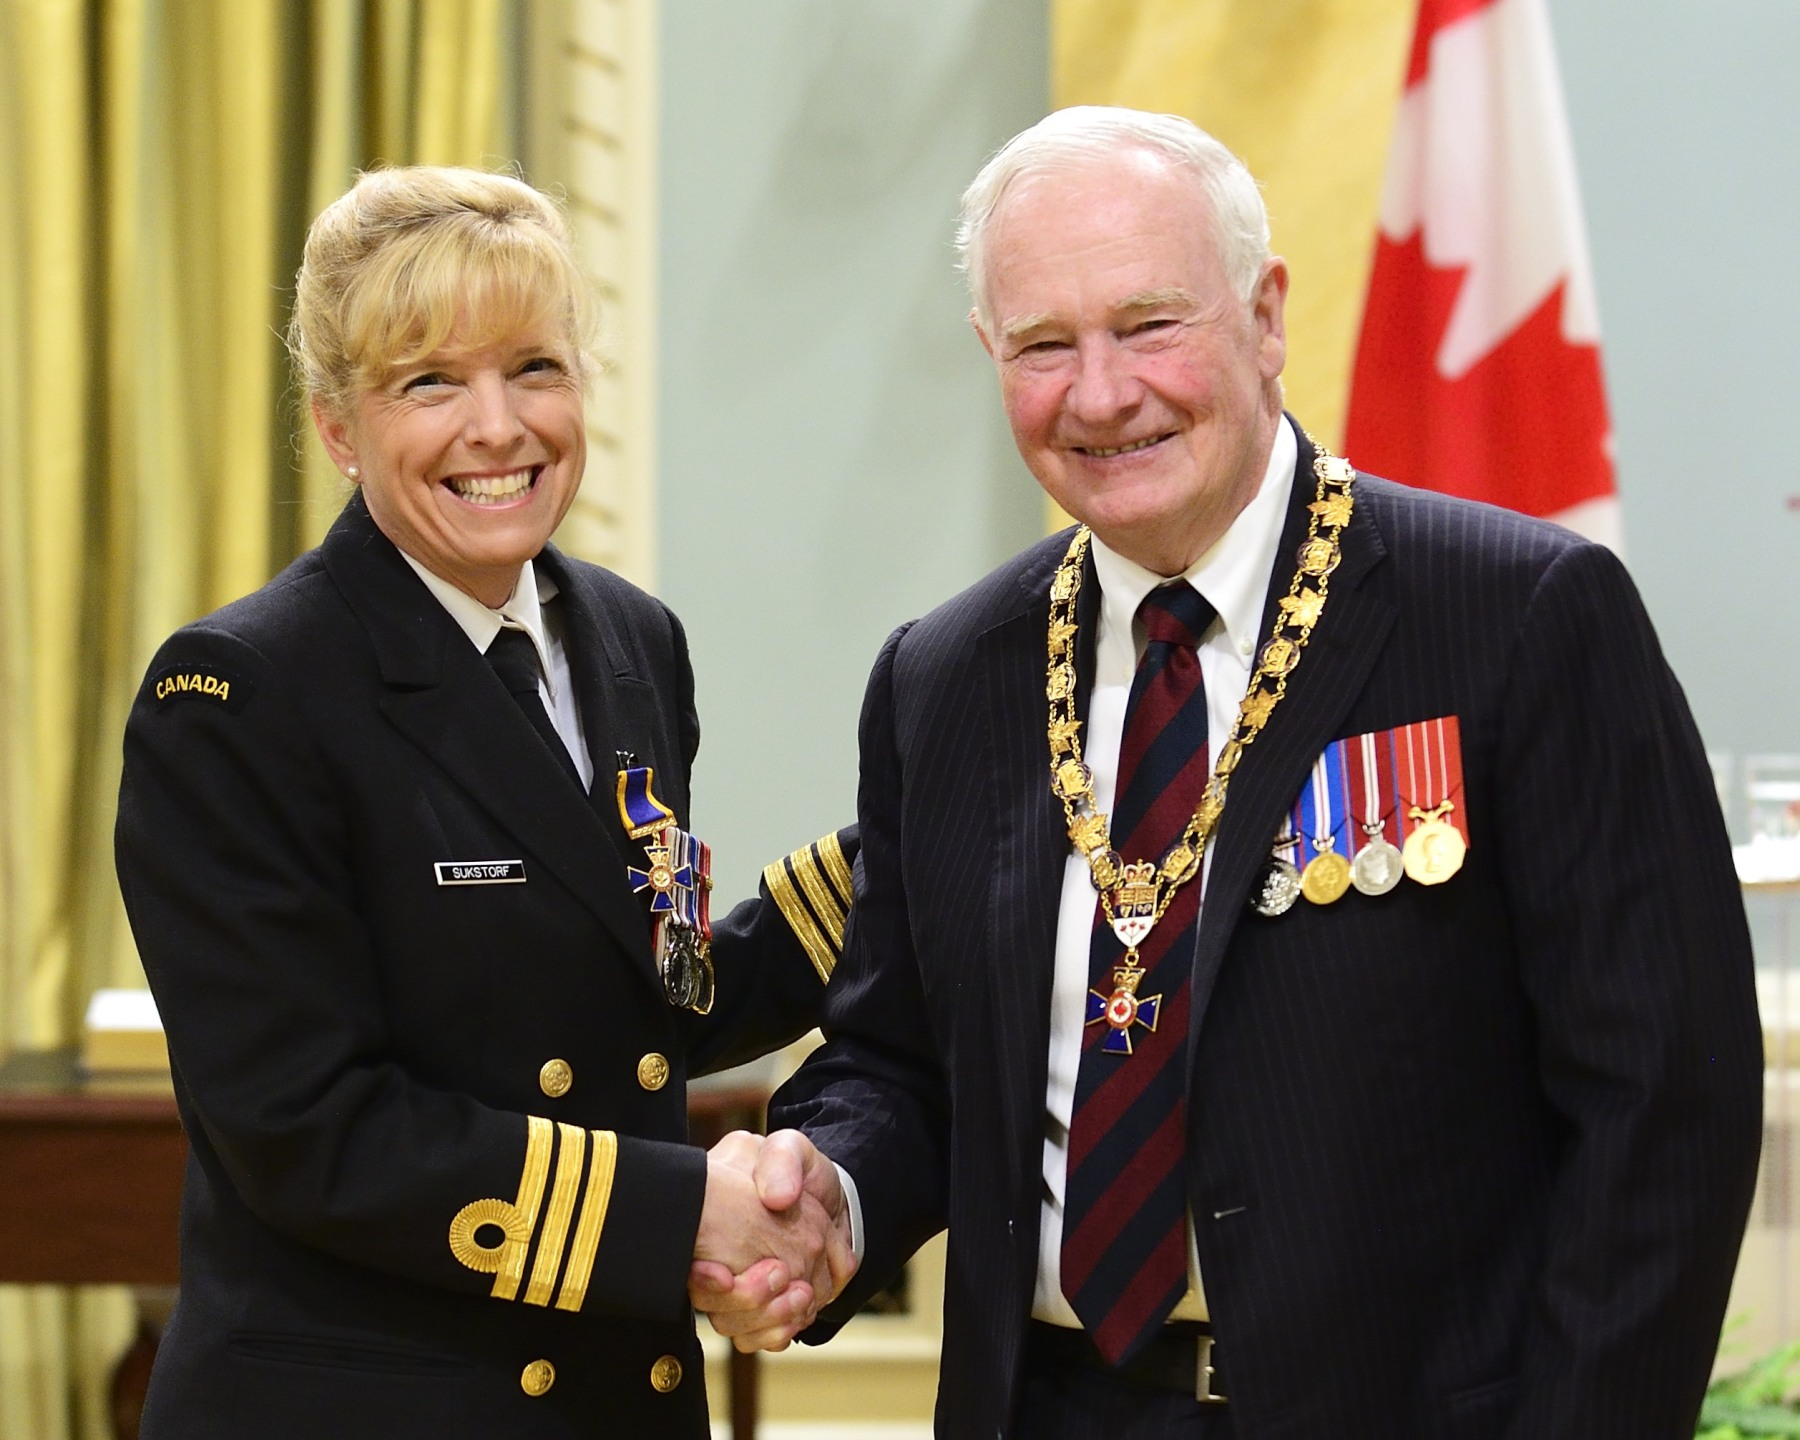 His Excellency presented the Order of Military Merit at the Officer level (O.M.M.) to Commander Sandra Sukstorf, O.M.M., C.D., Assistant Judge Advocate General Central, Toronto, Ontario.